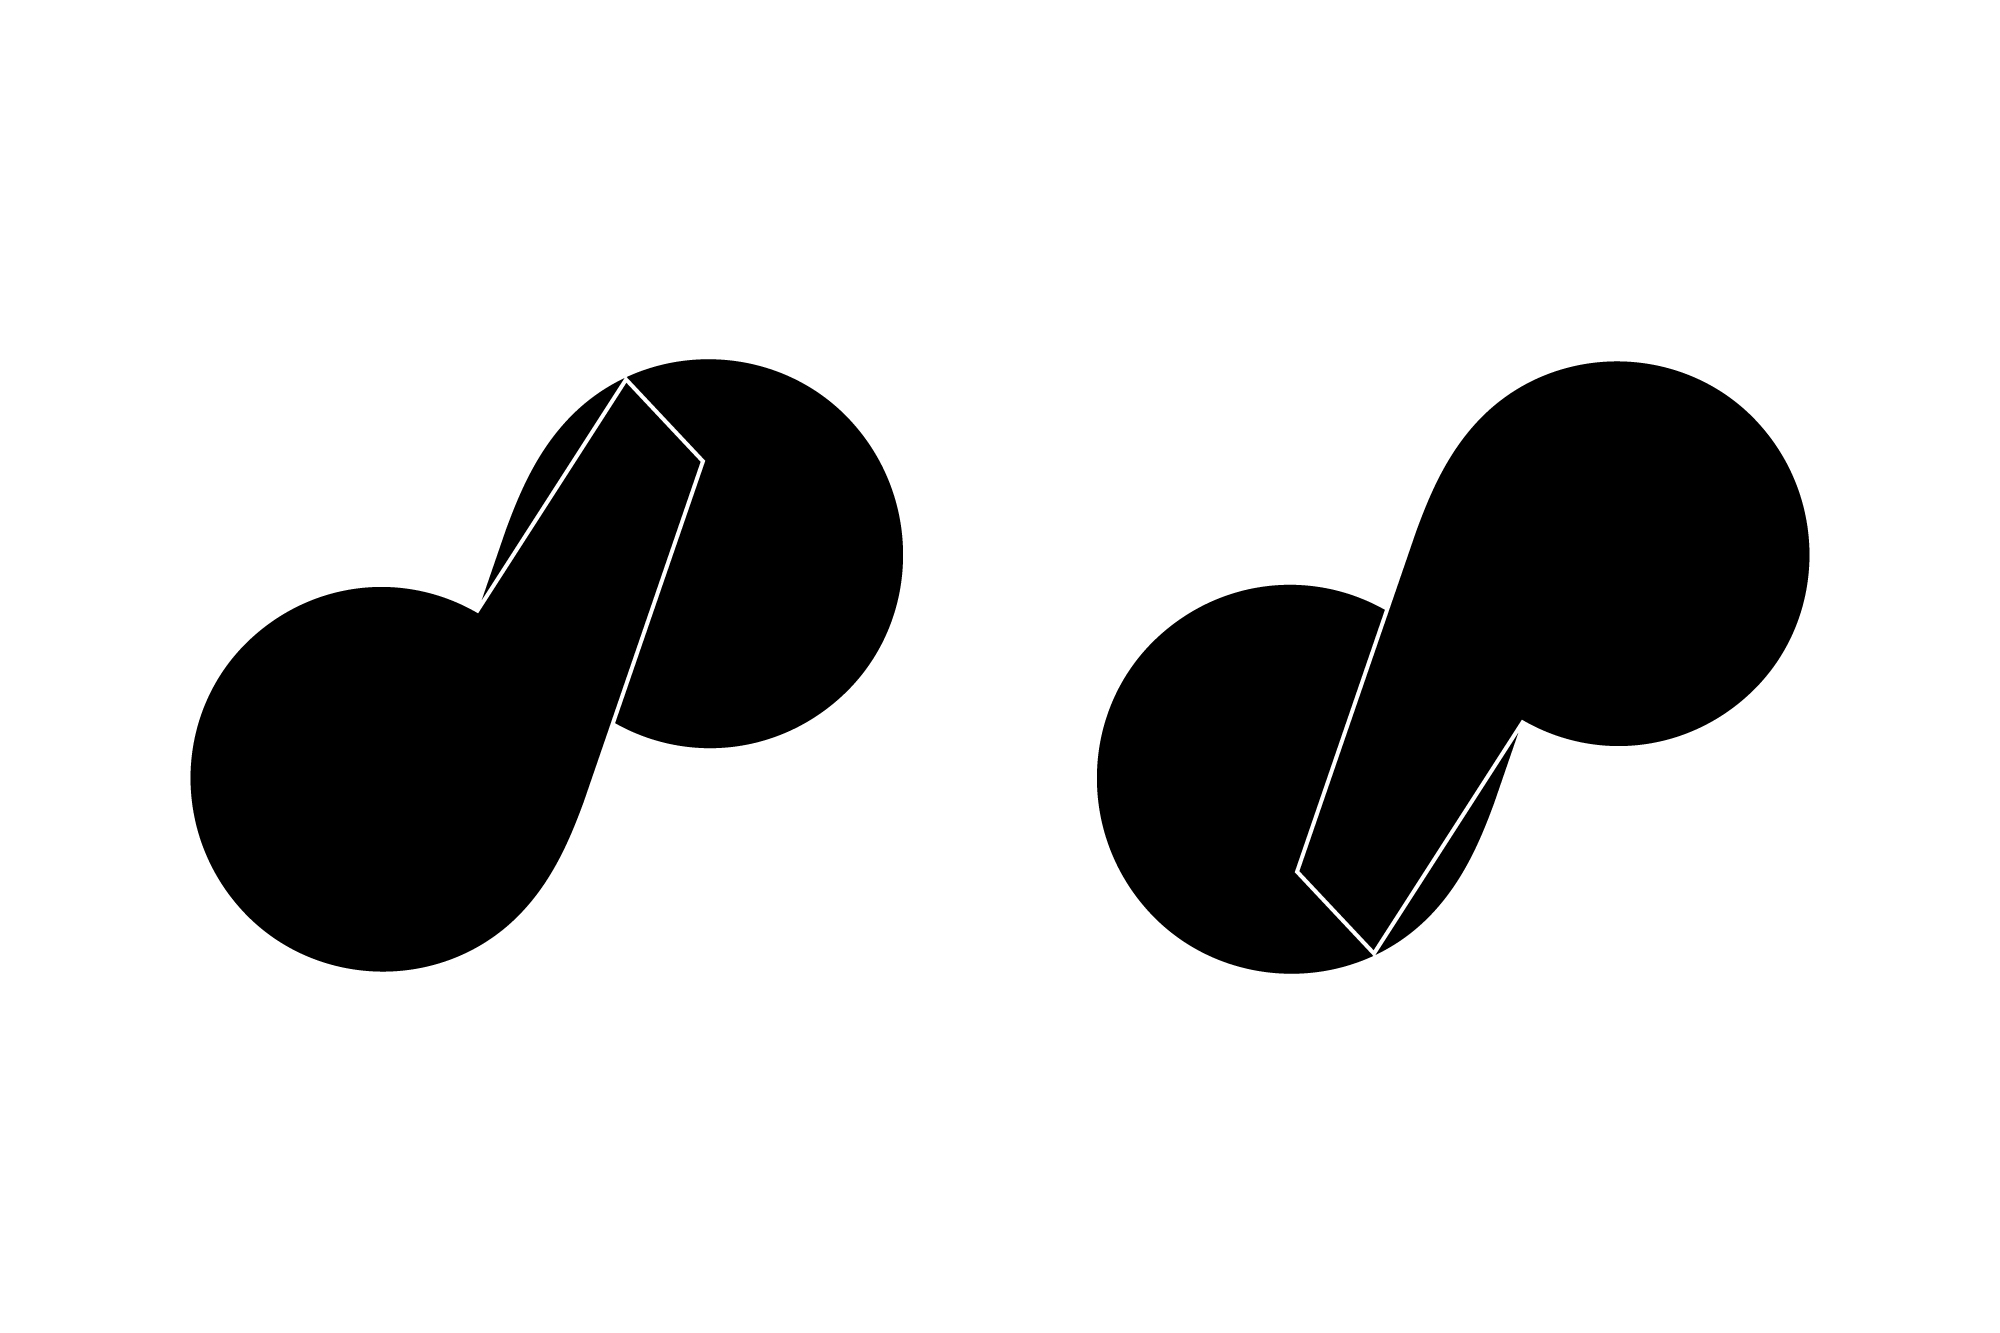 Lowercase 'd' (for Domain) and 'p' (for Pools)